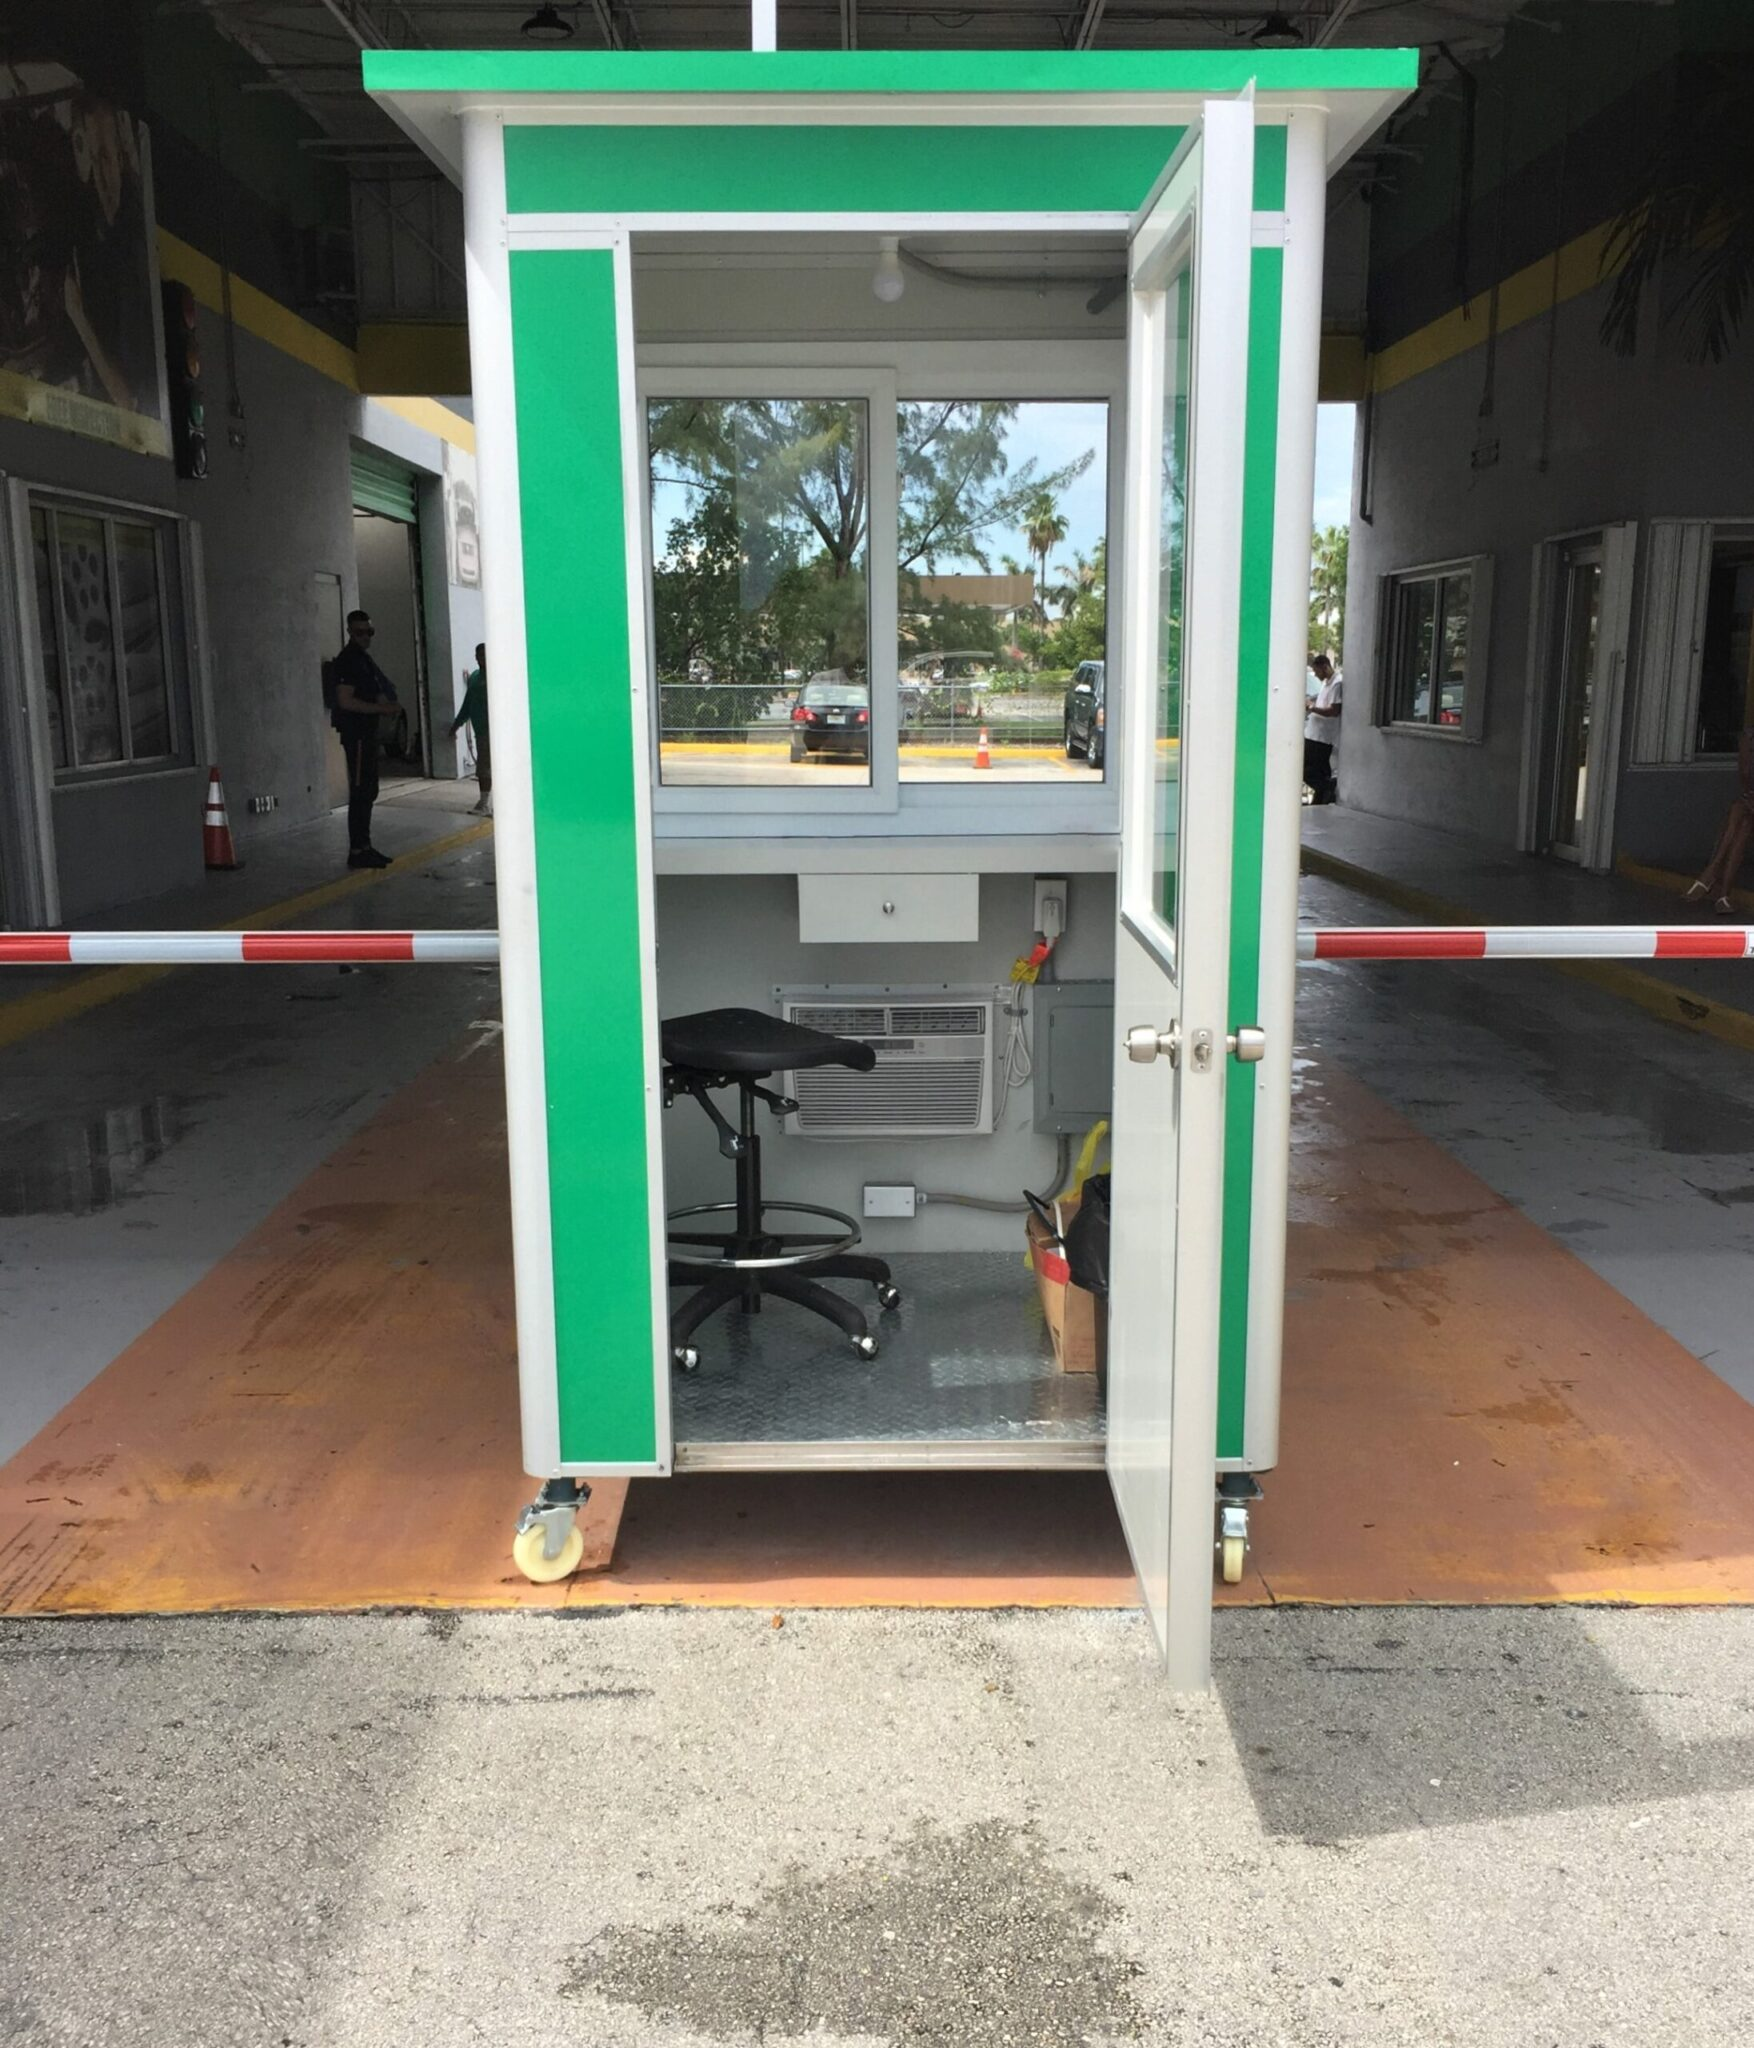 4x4 Parking Booth in Doral, Fl Outside a Car Dealership with Built-in AC, Breaker Panel Box, and Sliding Windows